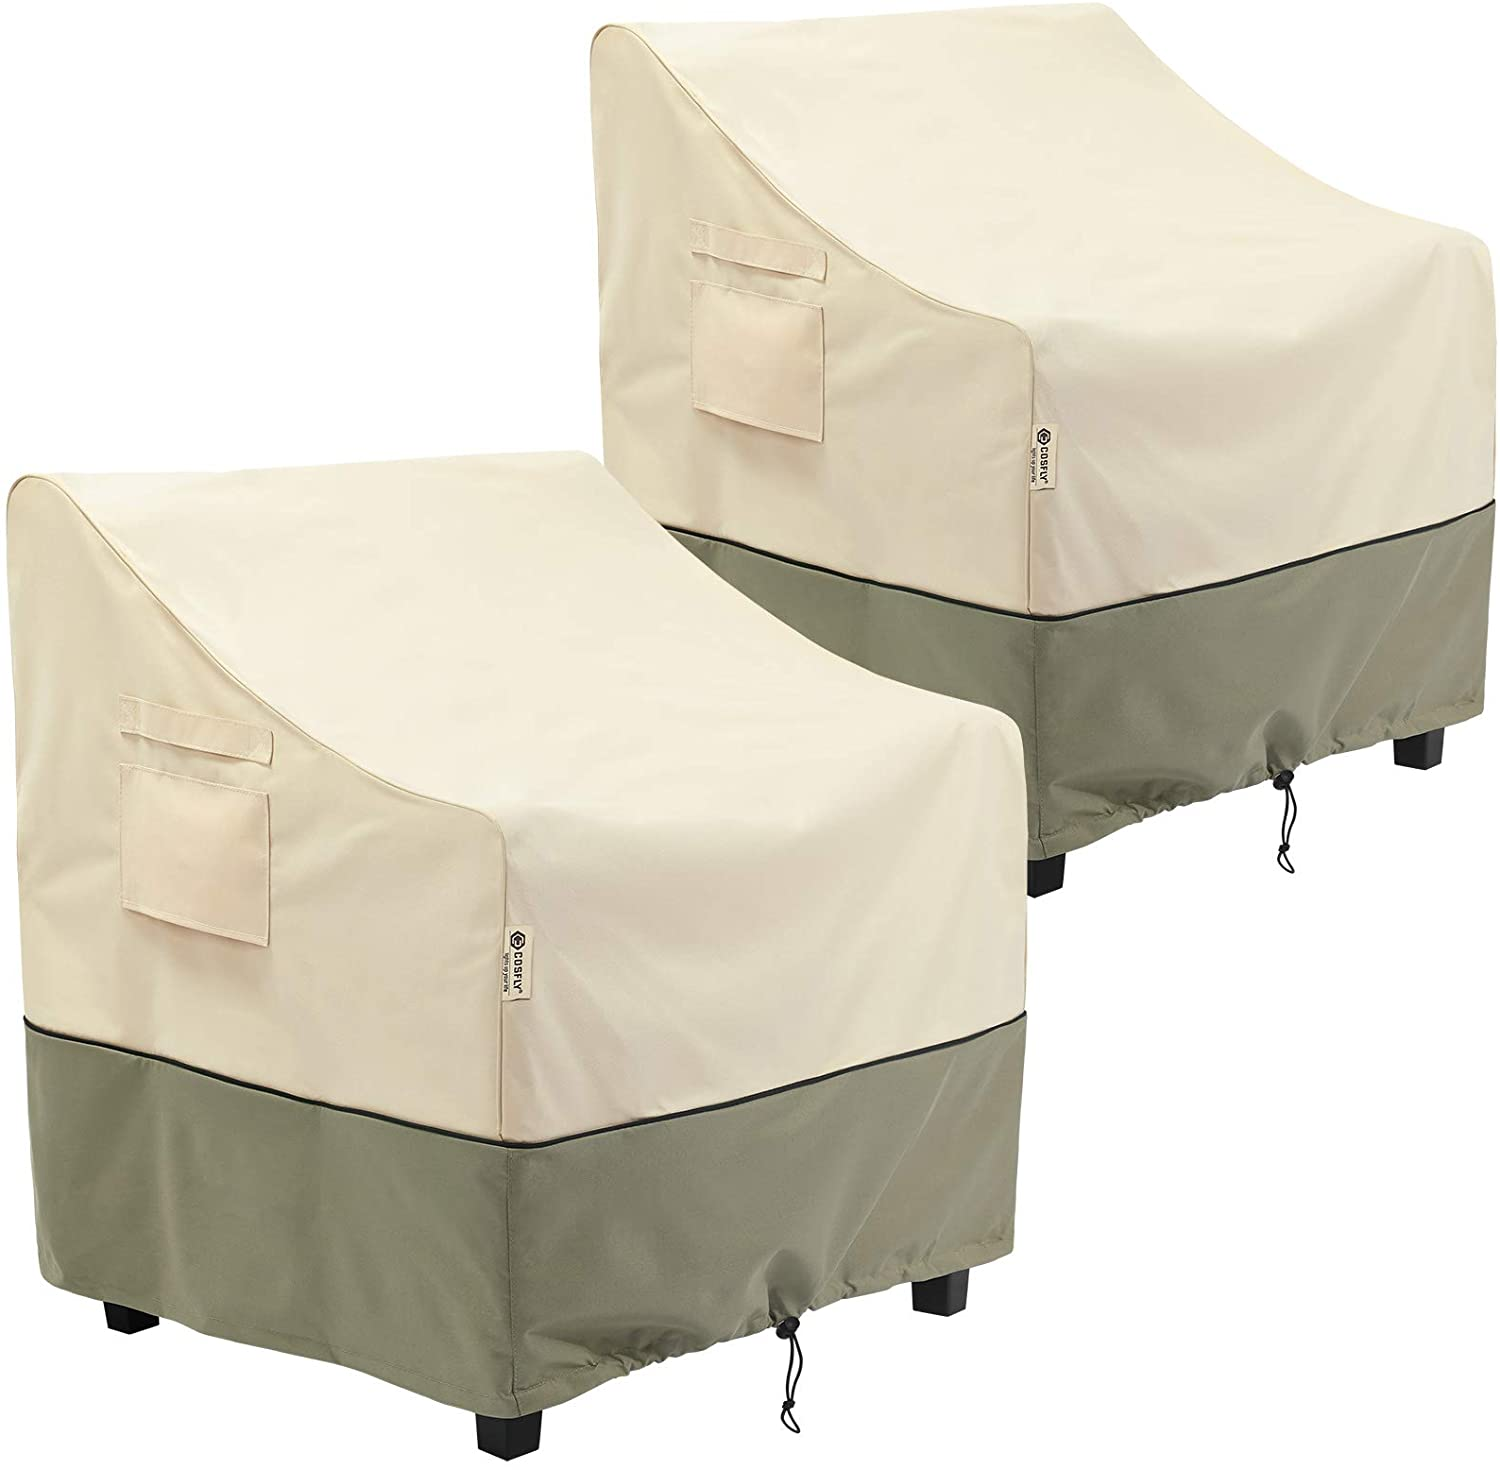 COSFLY Outdoor Furniture Patio Chair Covers Waterproof Clearance, Lounge Deep Seat Cover, Lawn Furnitures Covers Fits up to 32W x 37D x 36H inches(2 Pack)